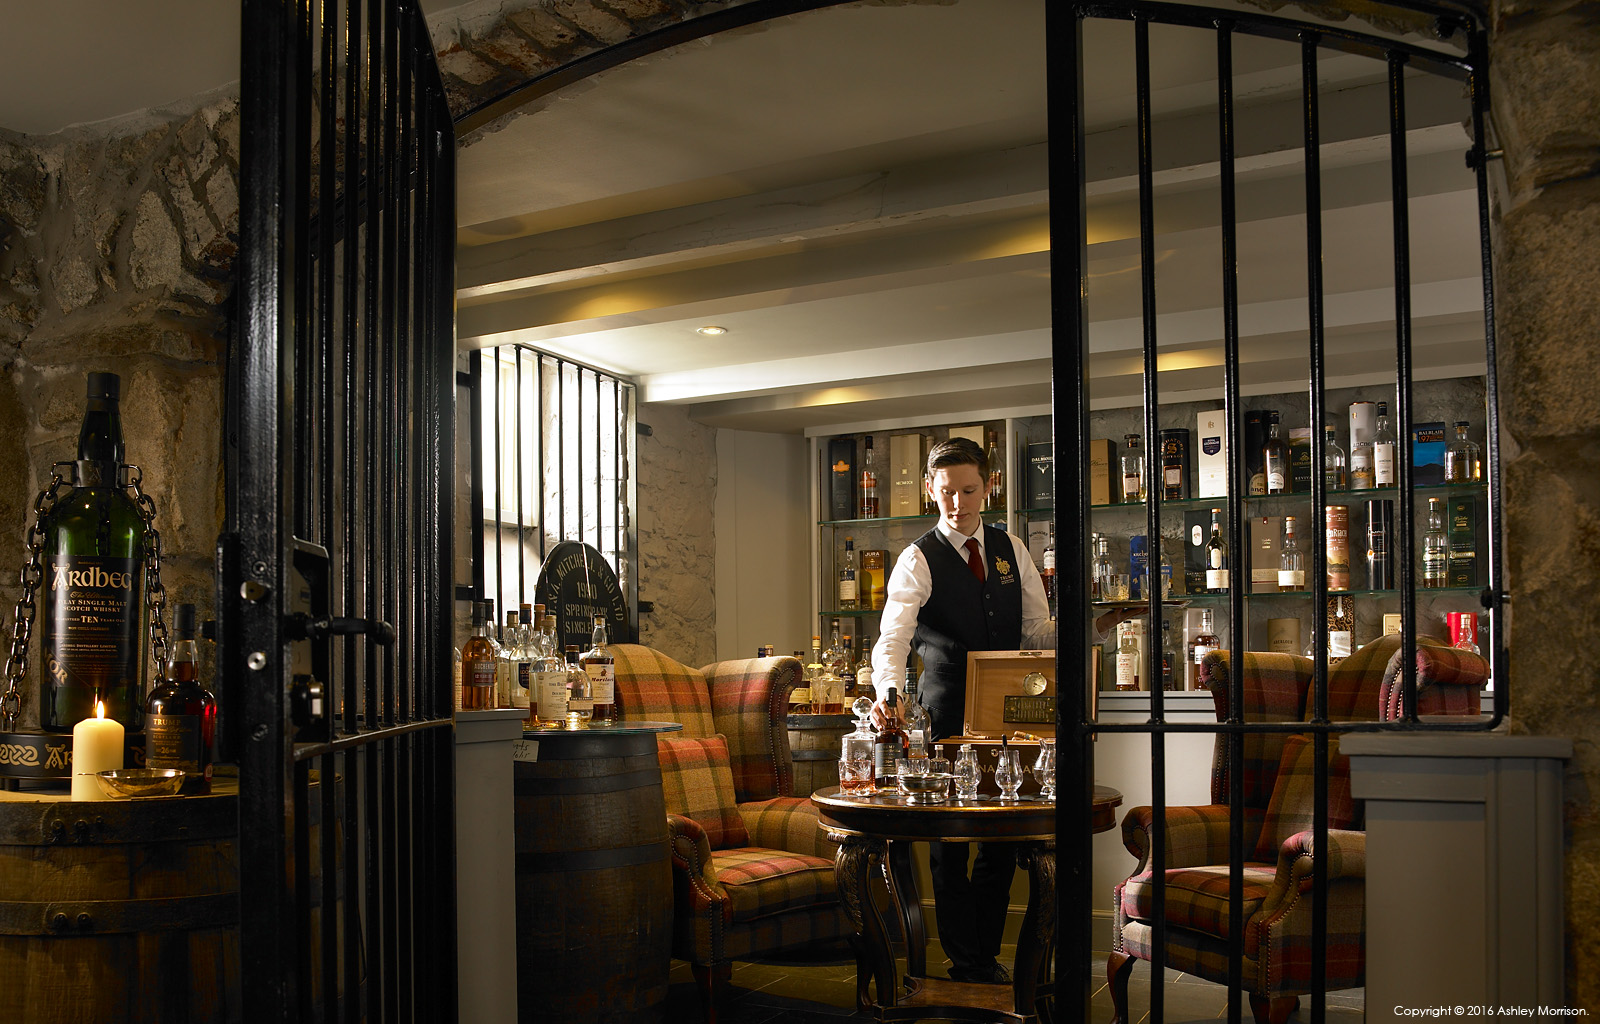 The Whisky tastings room in the basement at the Trump International Golf Hotel near Aberdeen in Scotland.